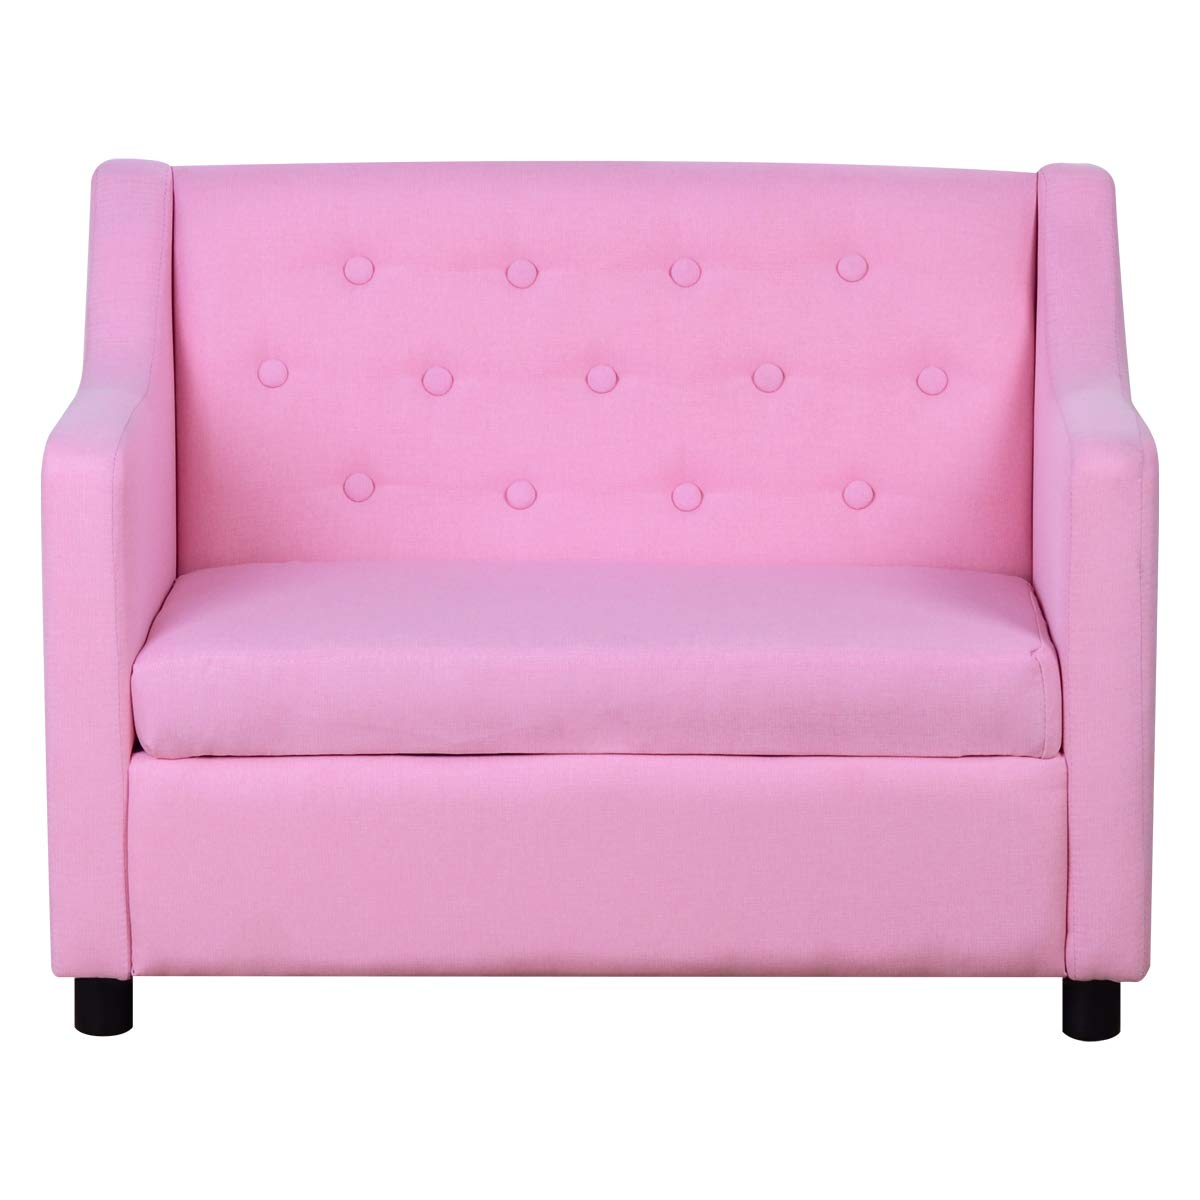 Kids Sofa 30-Inch Linen Fabric Upholstered Armchair with Storage for Children Gift Pink